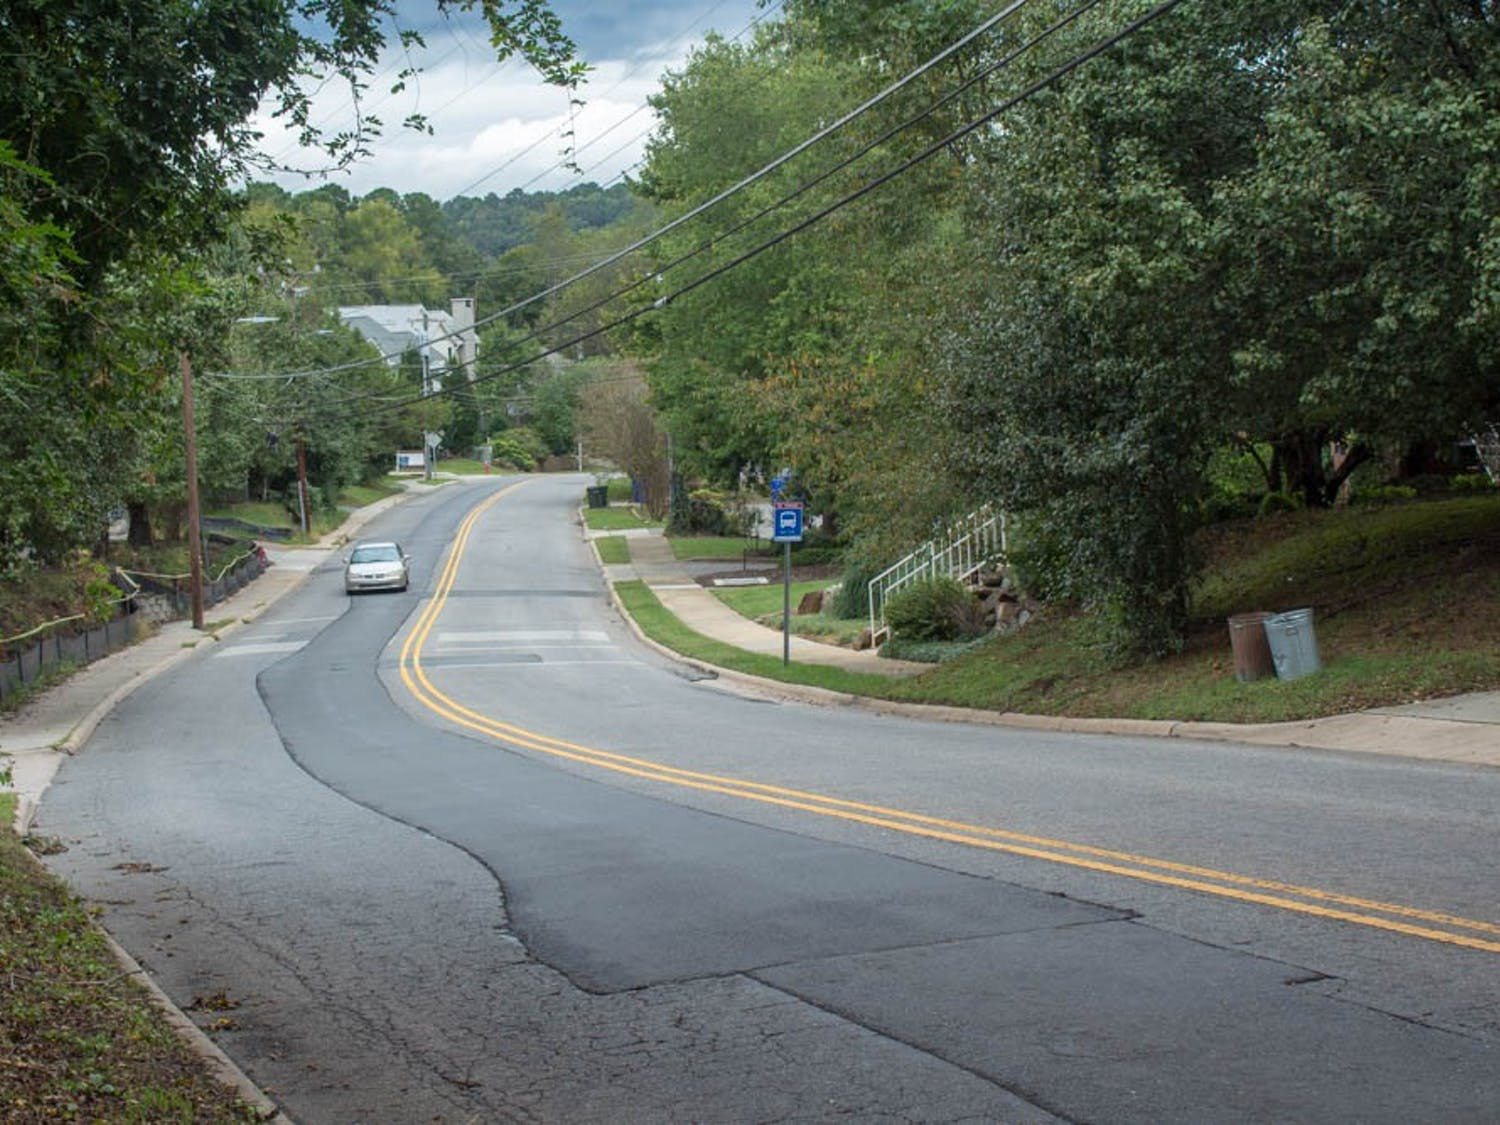 Chapel Hill will be accepting contract bids for the reconstruction project on Hillsborough Road between East Franklin Street and Martin Luther King Jr.